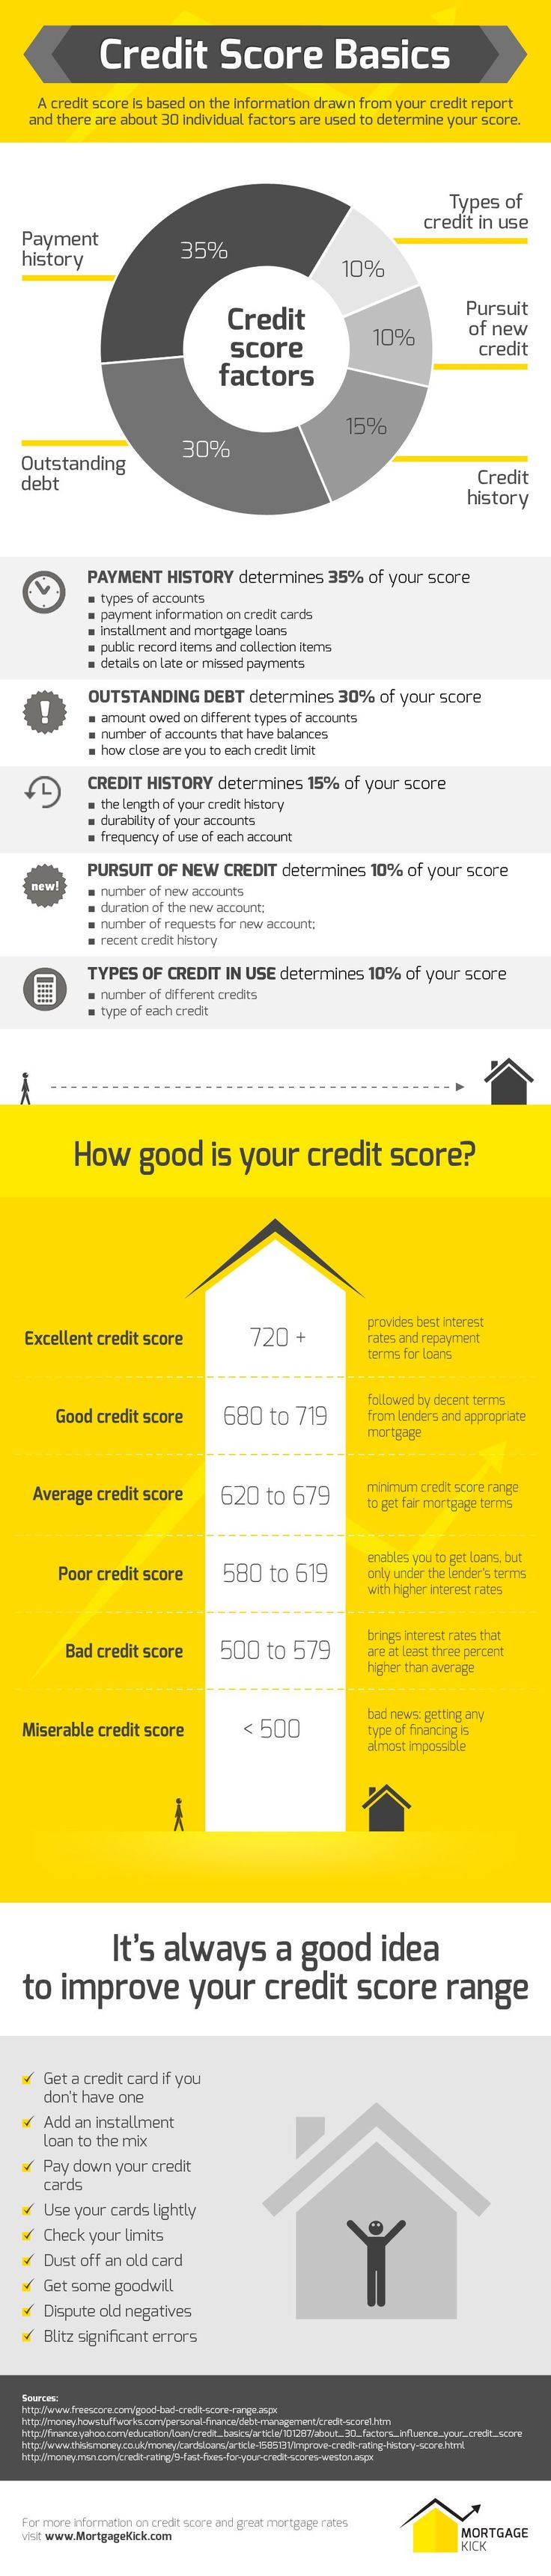 #important #important #excellent #approved #loanwhat